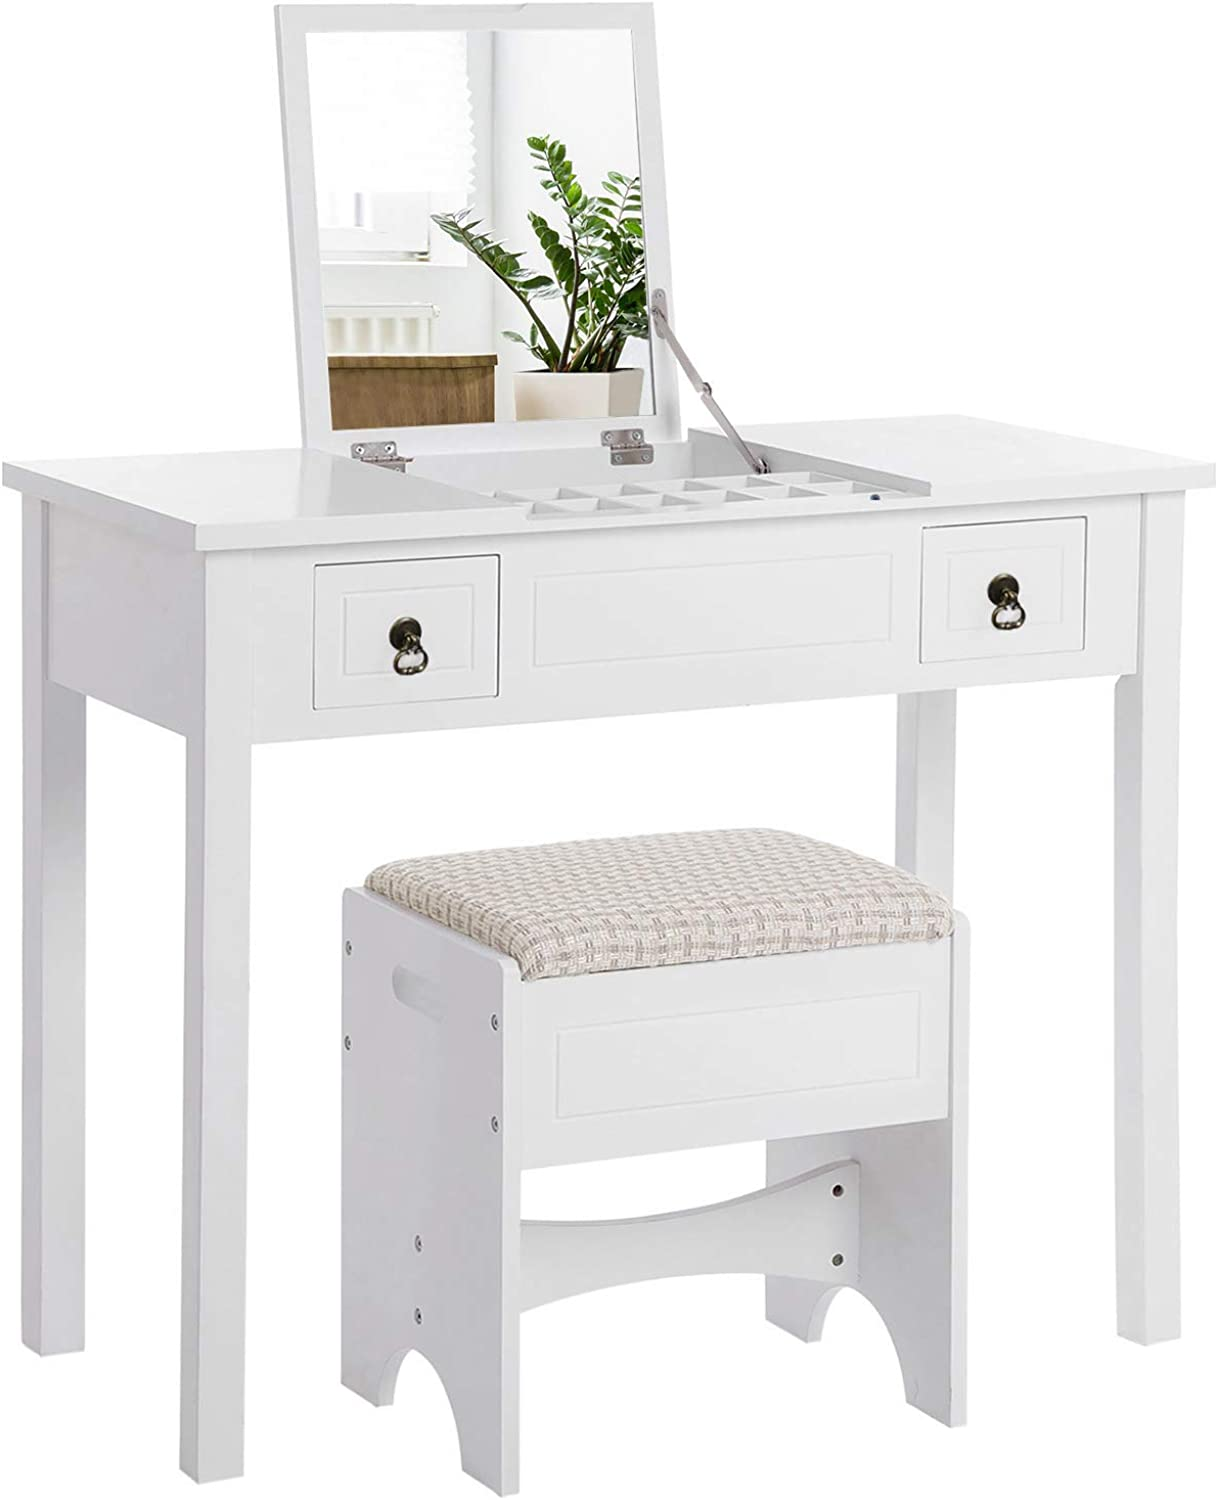 VASAGLE Vanity Set with Flip Top Mirror Makeup Dressing Table Writing Desk with 2 Drawers Cushioned Stool 3 Removable Organizers Easy Assembly, White URDT01WT